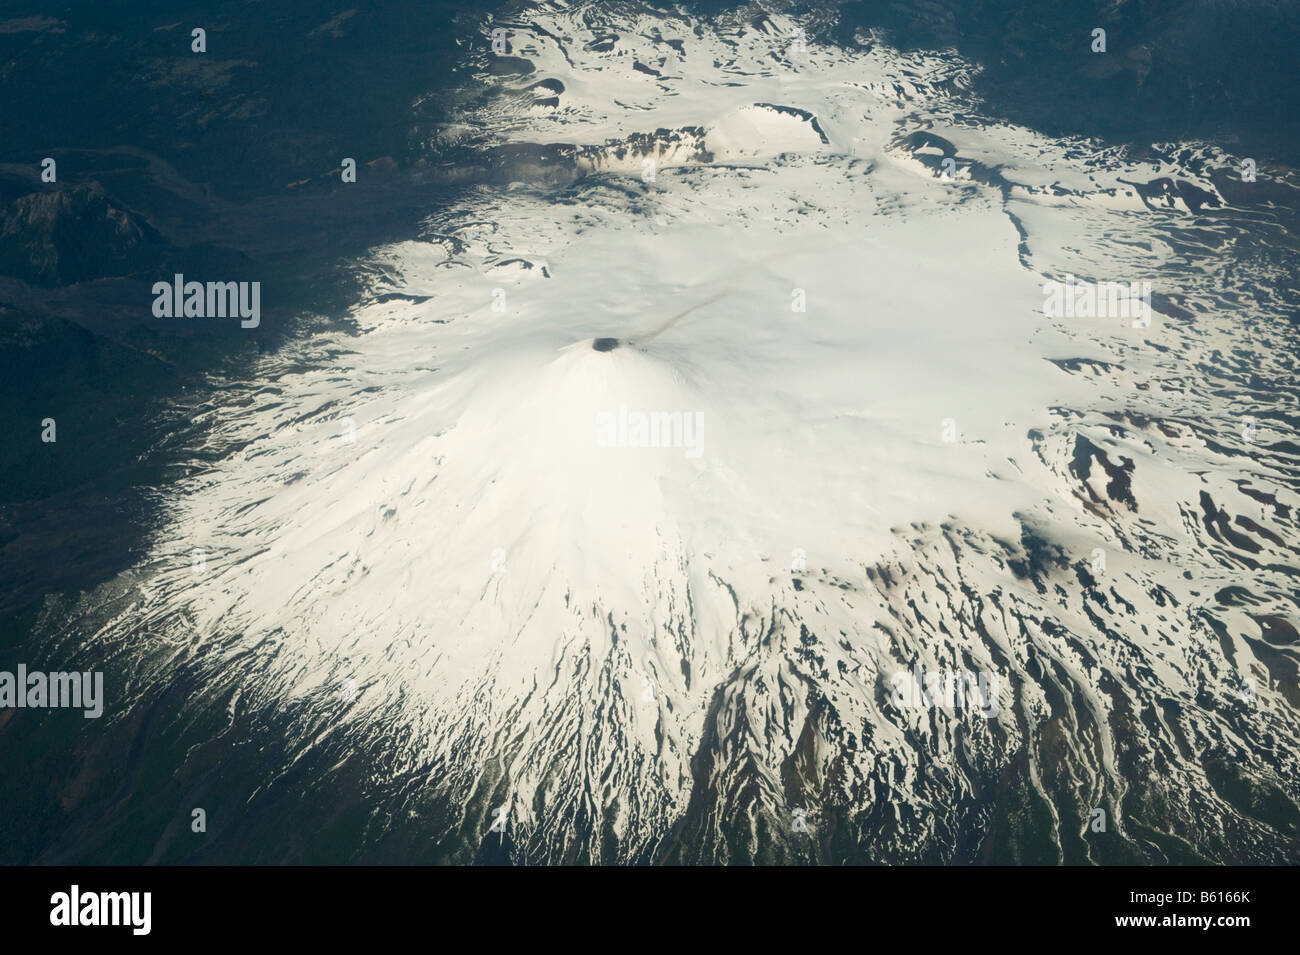 Volcan Villarica, Aerial, 2840m Villarica National Park, CHILE : Shot from commercial plane window  so image is - Stock Image